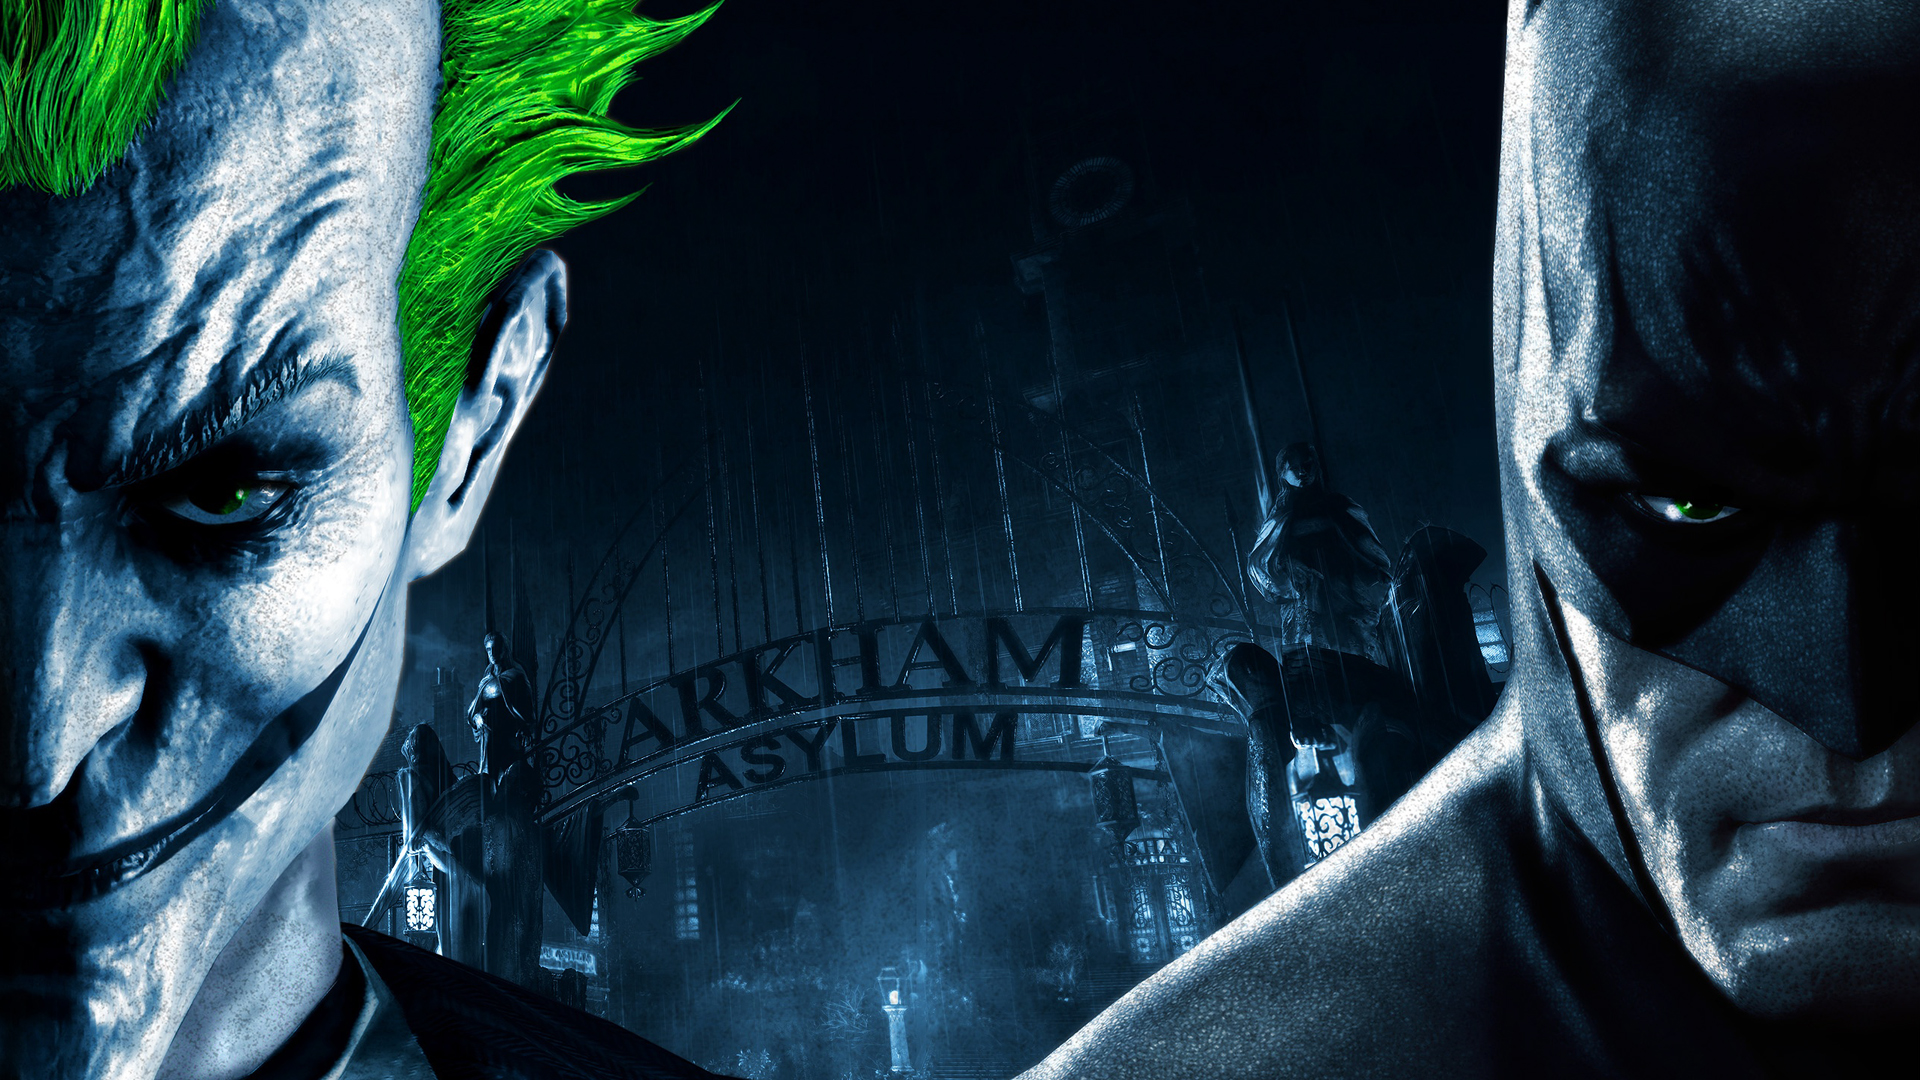 Batman arkham asylum 1920x1080 1   hebusorg   High Definition 1920x1080